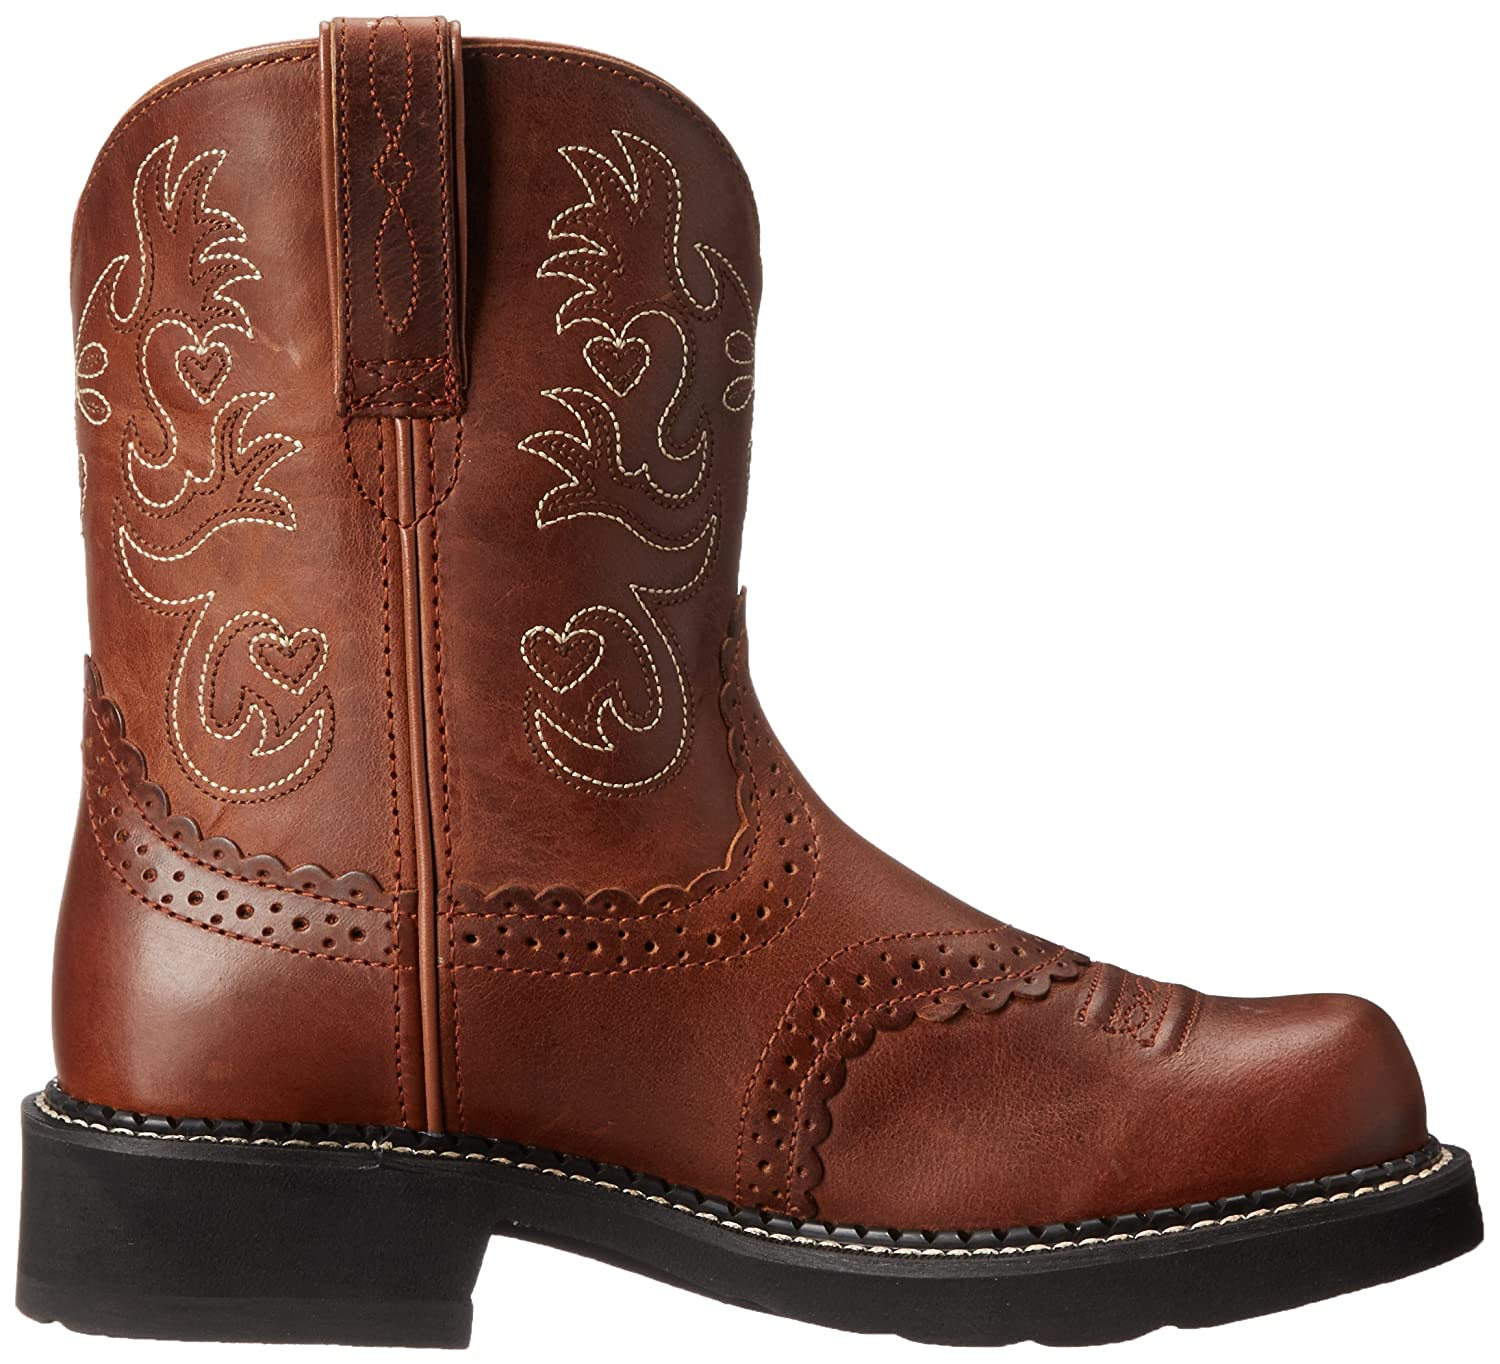 Ariat Women's Fatbaby Saddle Western Cowboy Boot